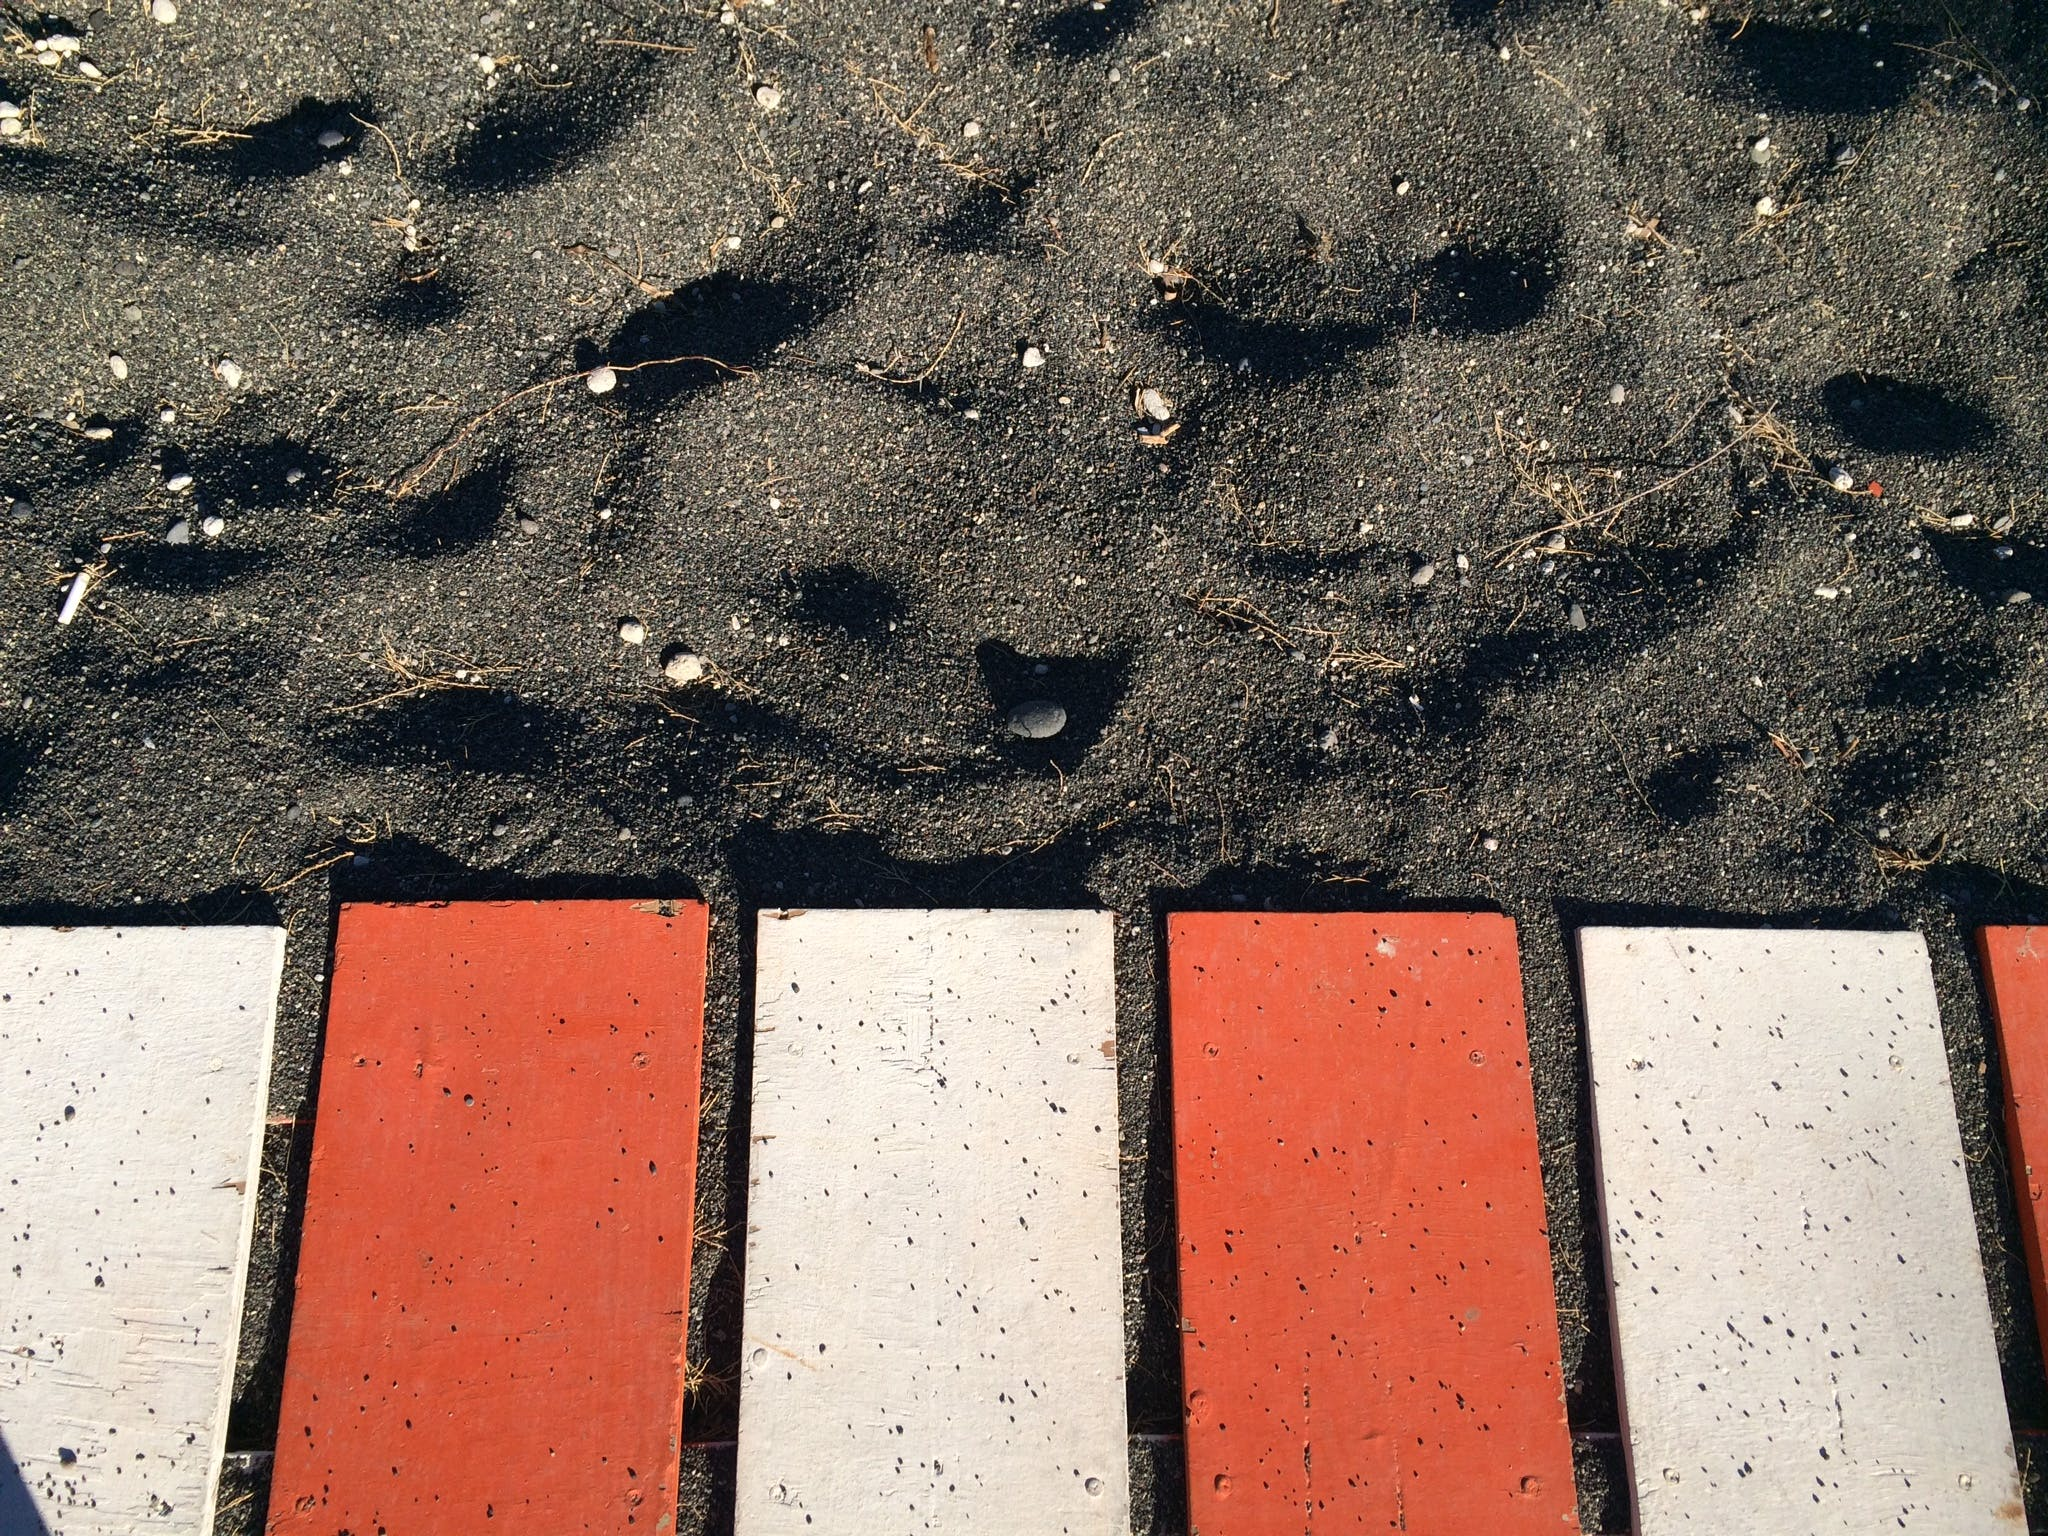 Red and White Metal Planks on Black Sand